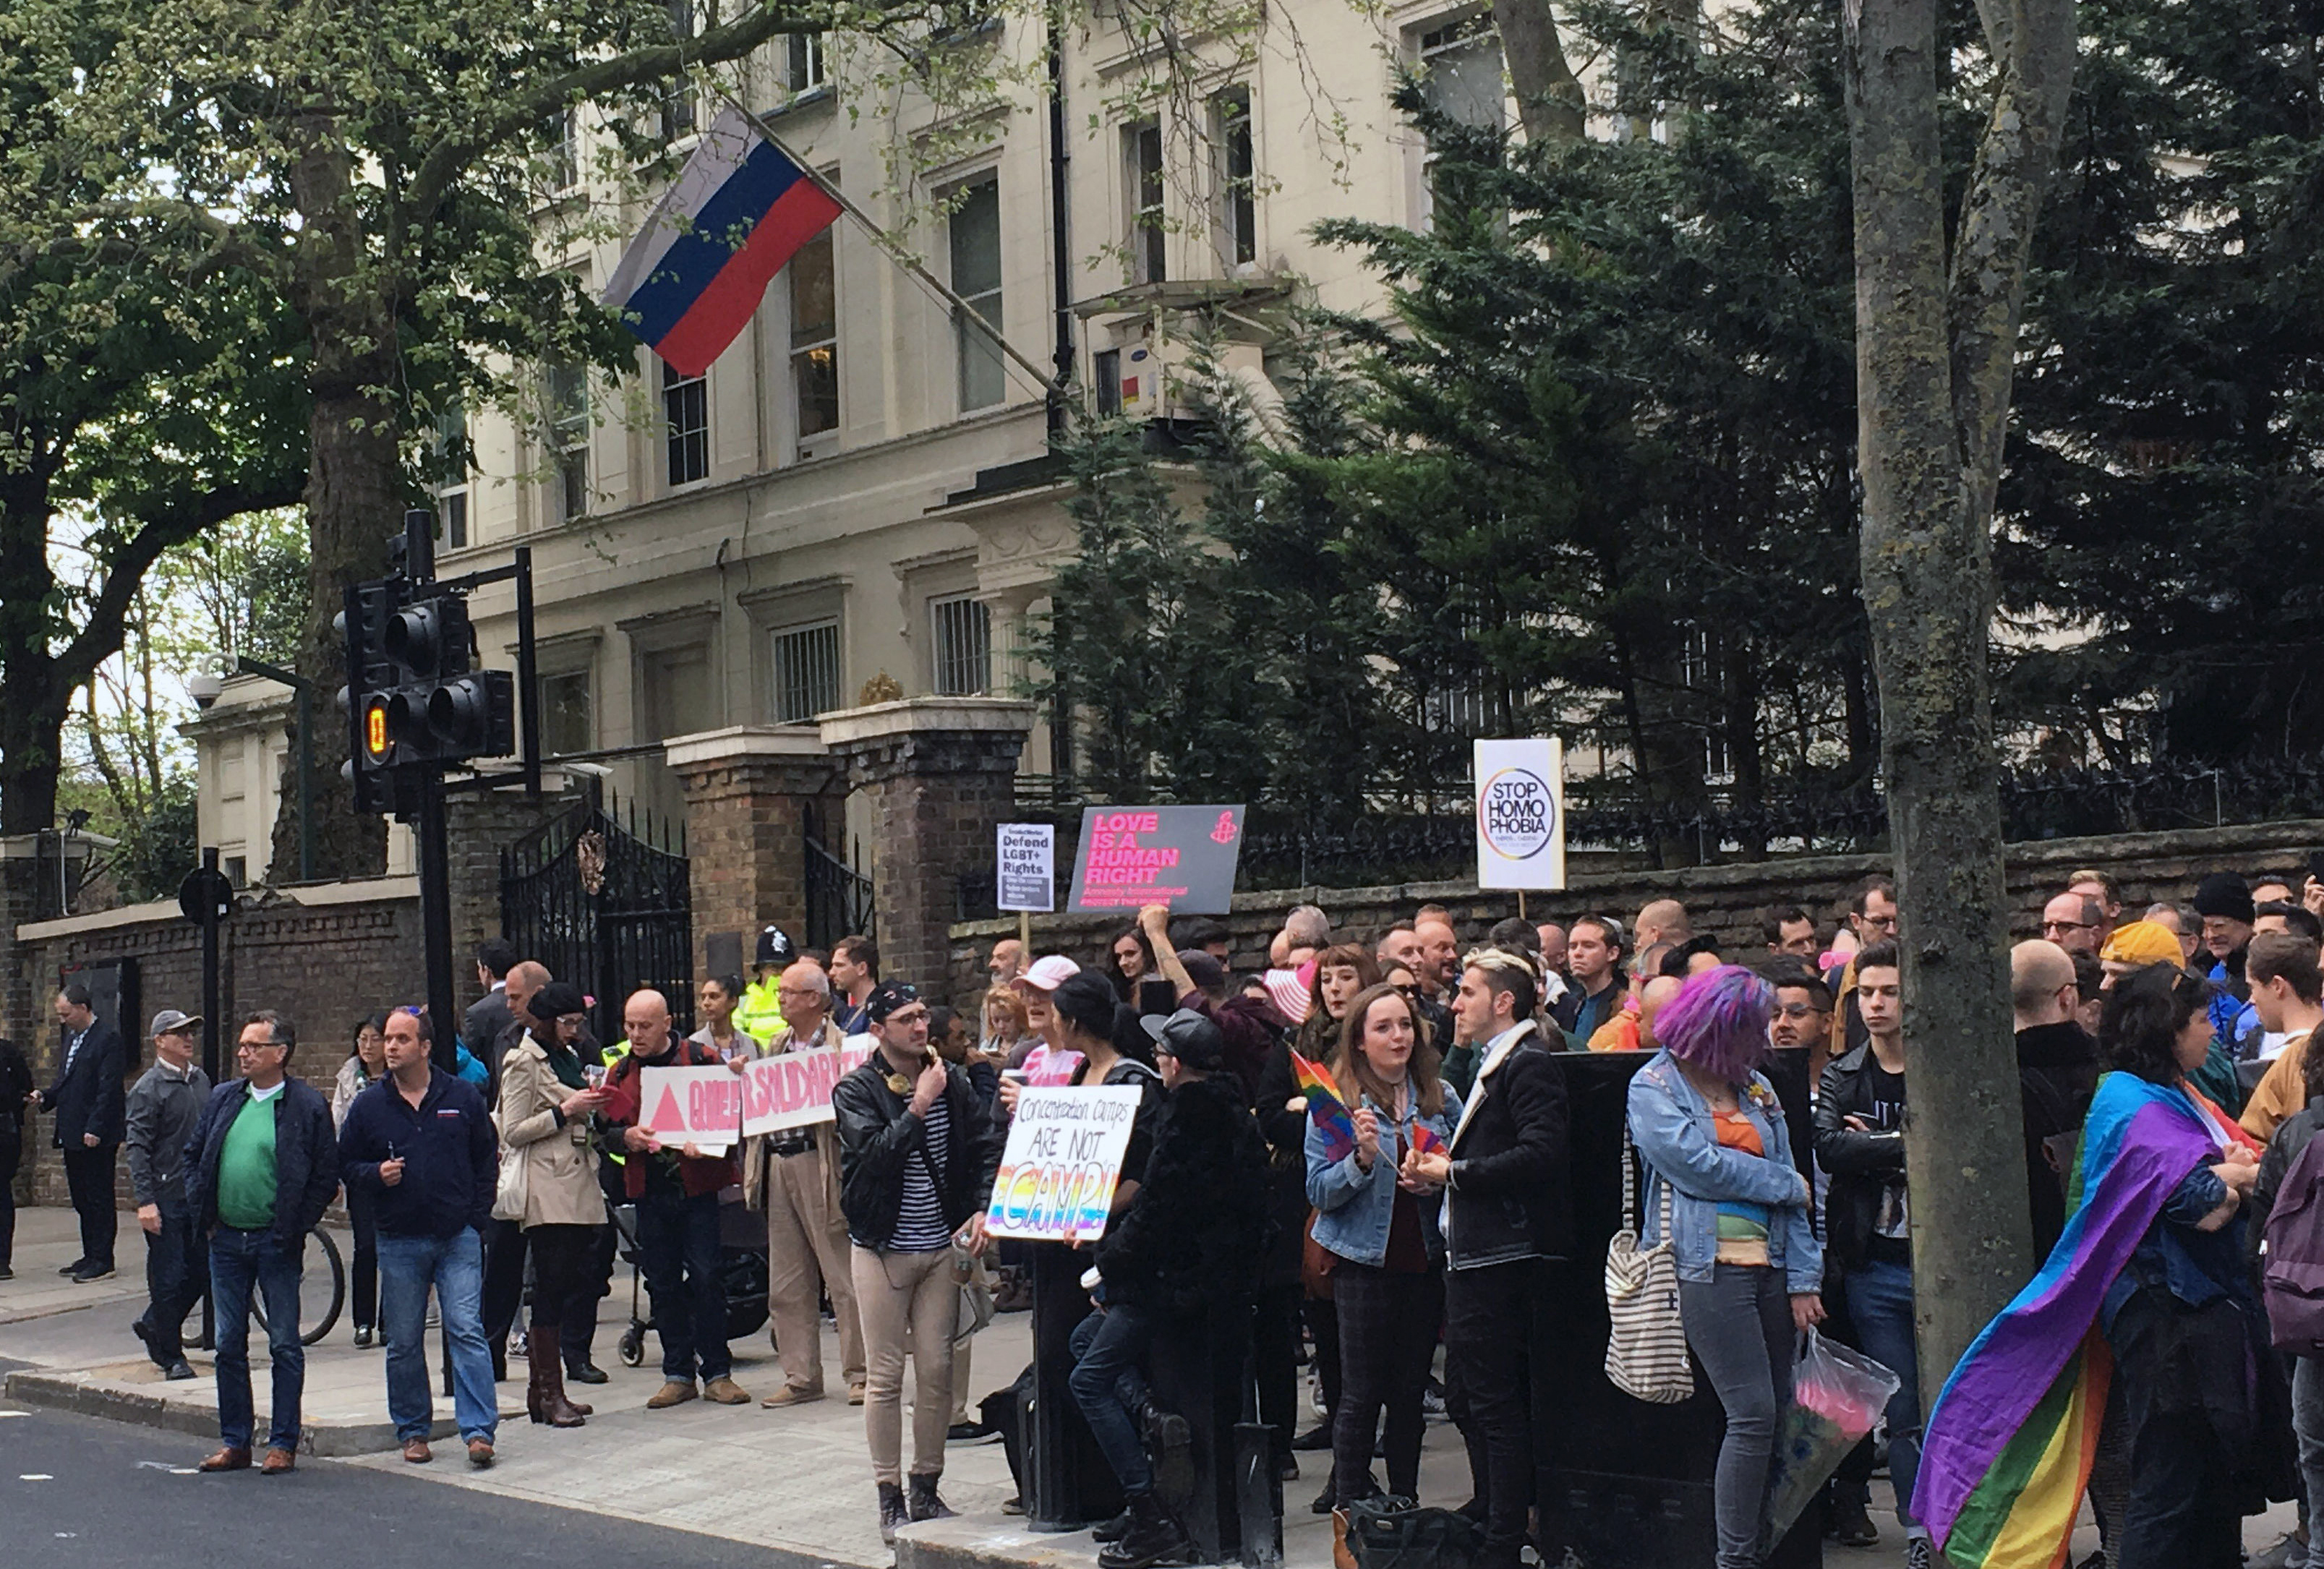 People protest outside the Russian Embassy in London, following reports of the torture and murder of gay men in Chechnya,  April 12, 2017.